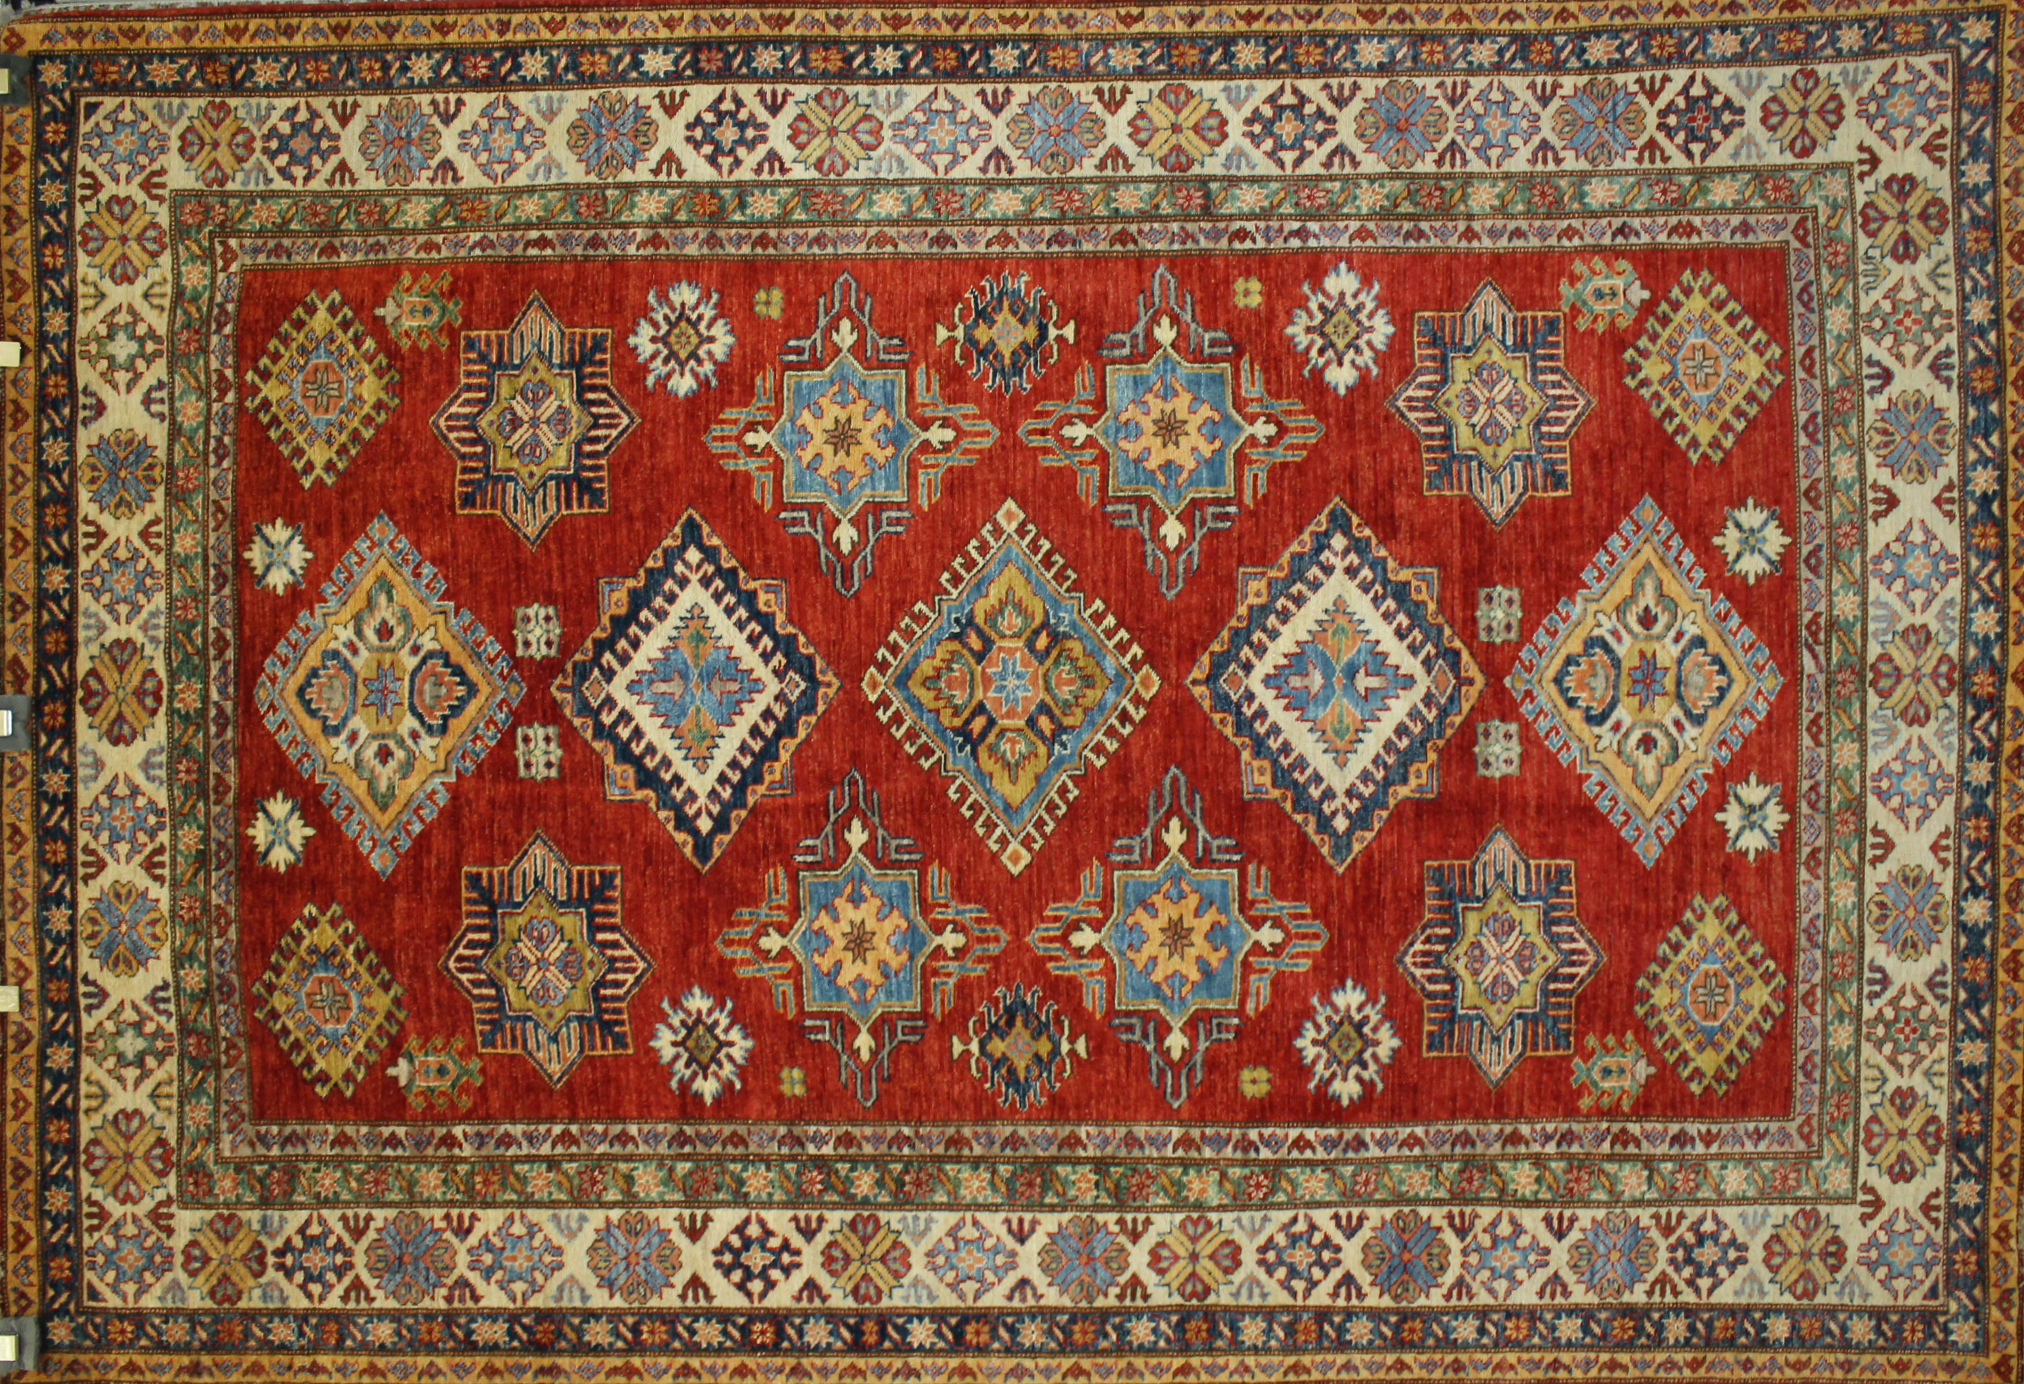 6x9 Kazak Hand Knotted Wool Area Rug - MR022816